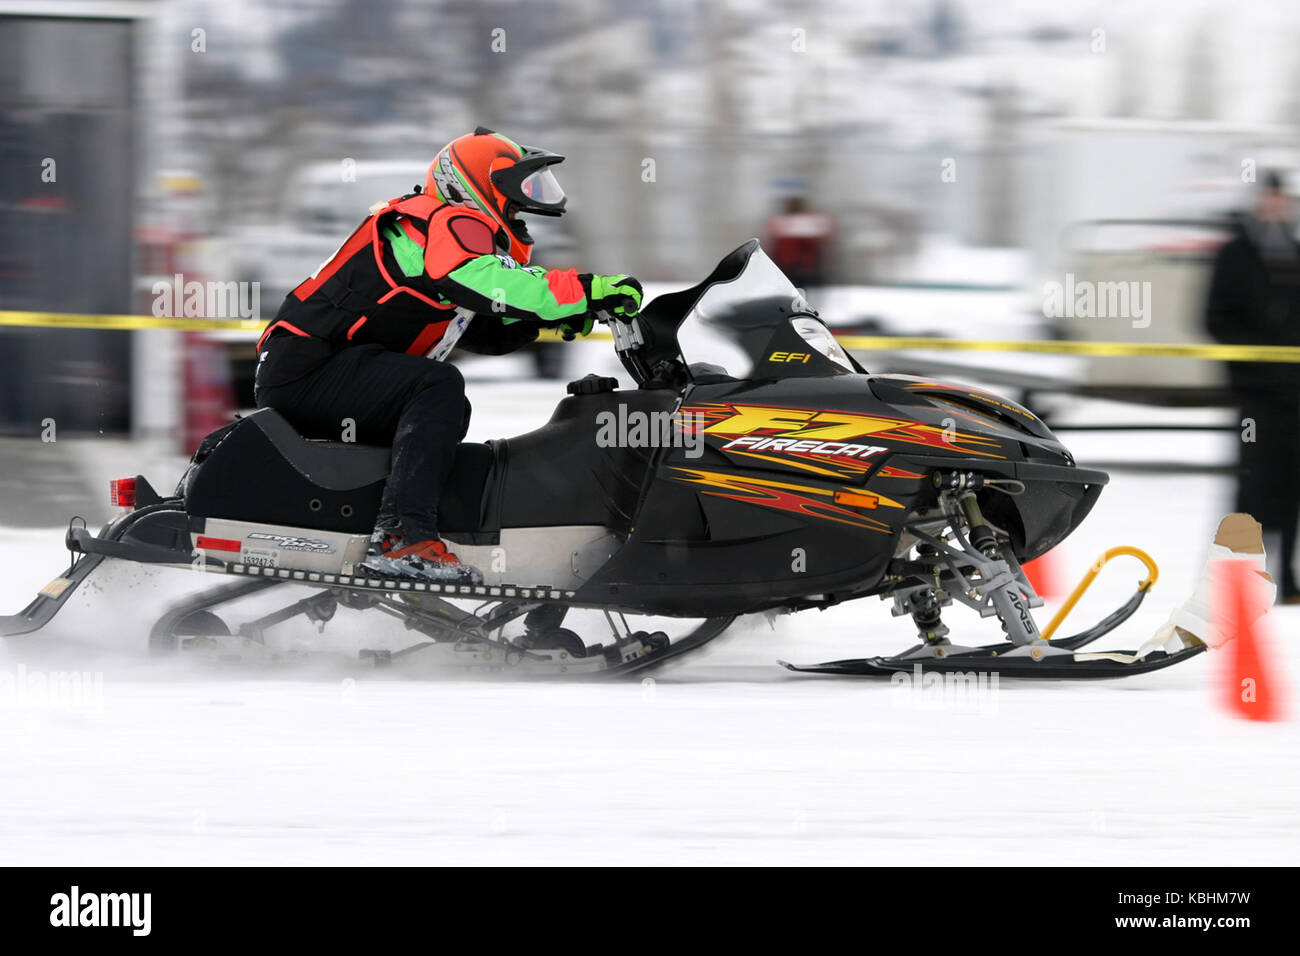 Snowmobile drag racing is an event that takes place during